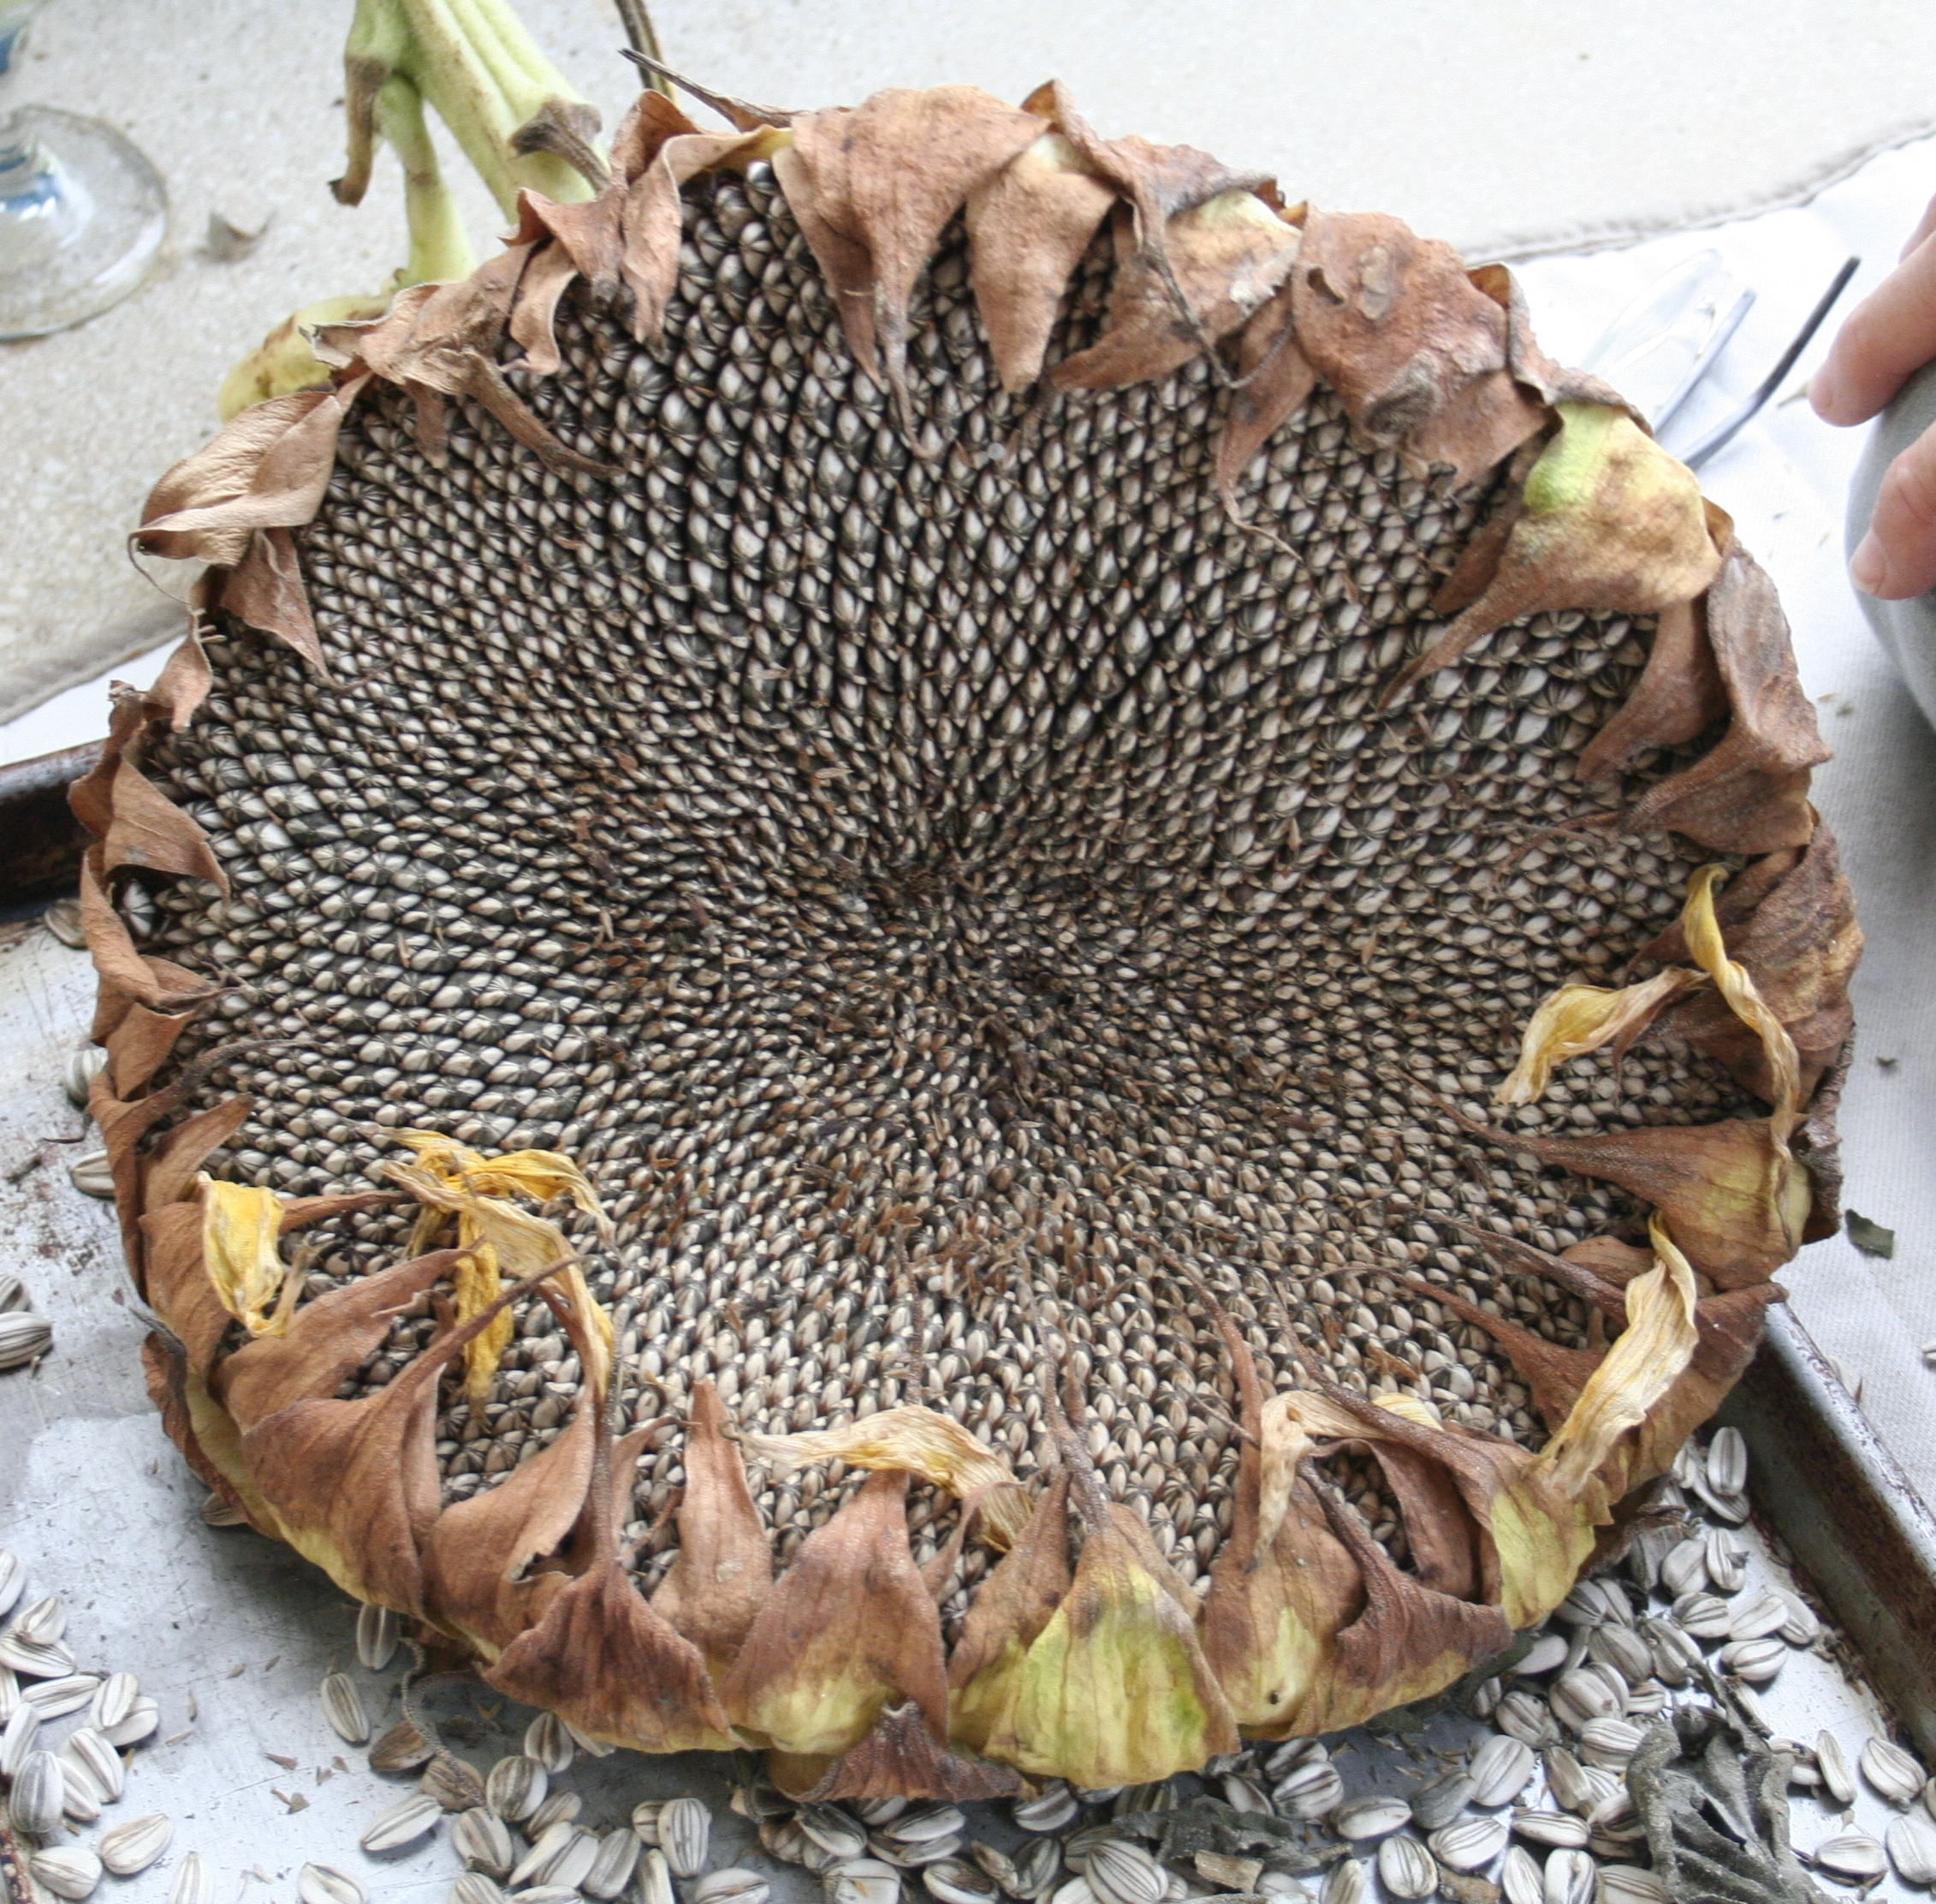 Dried sunflower head ready for harvest.